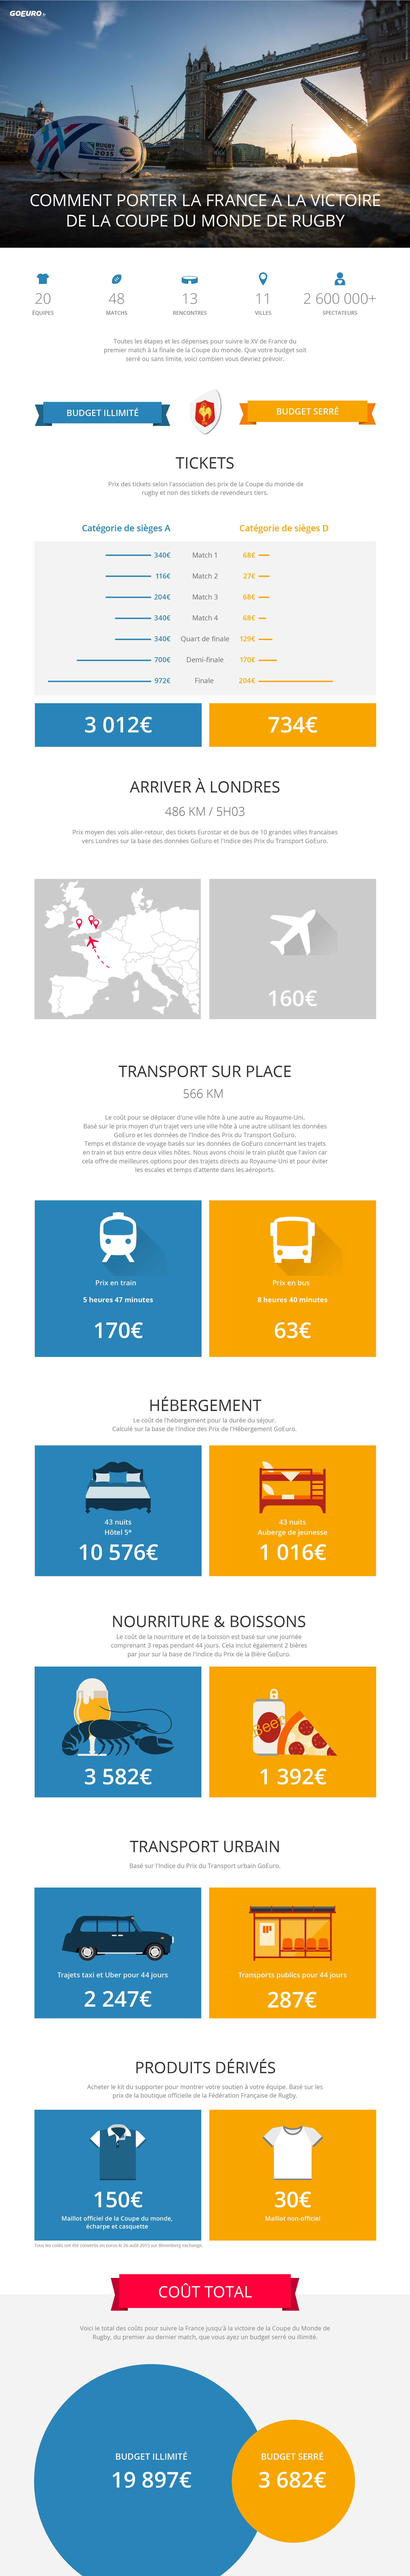 infographie goeuro.fr